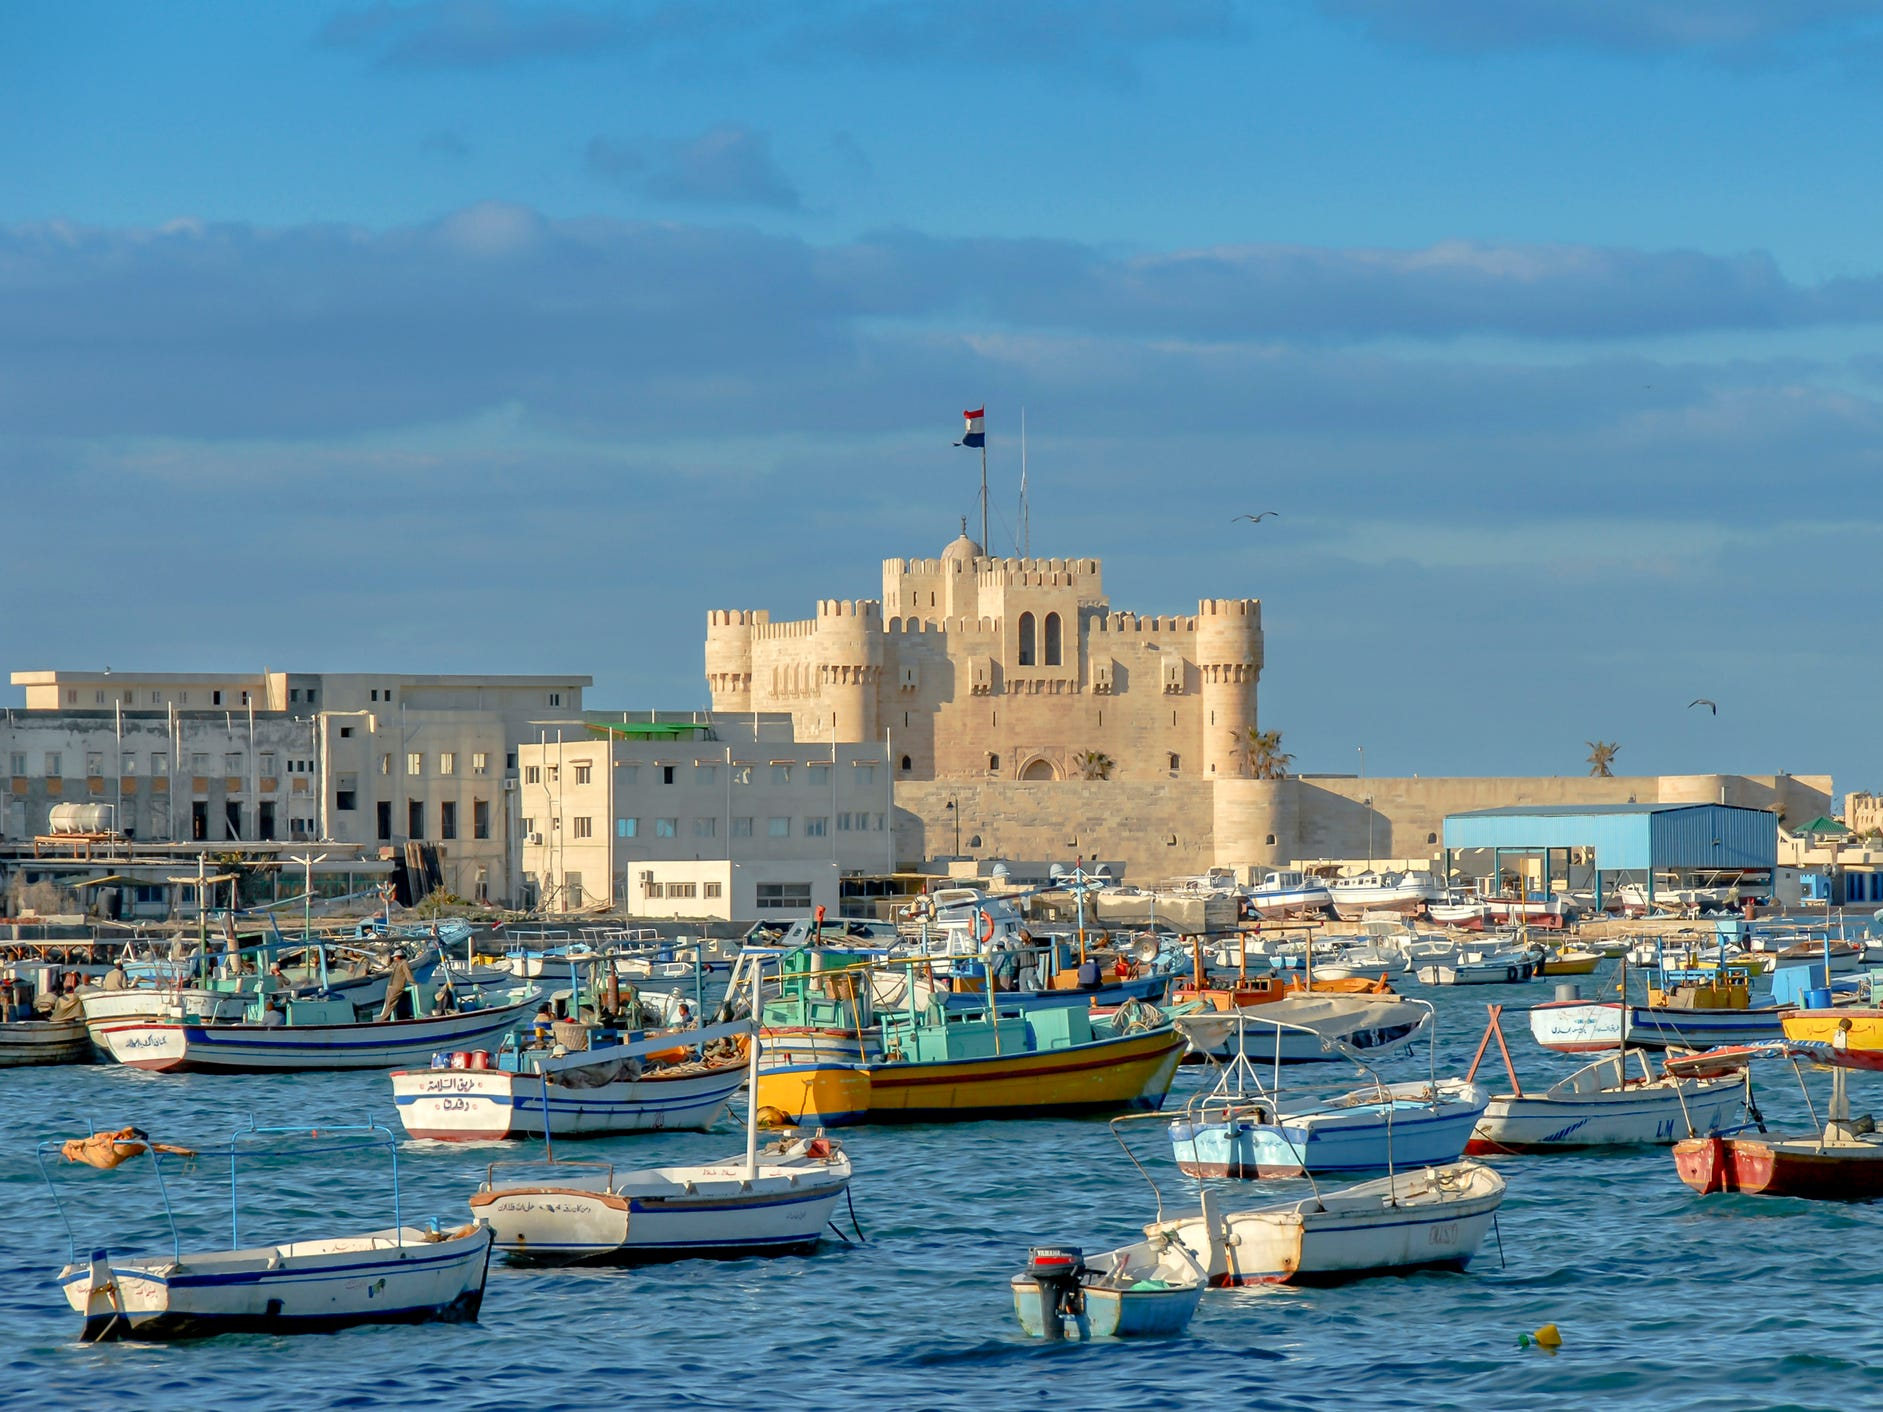 Although the Ottomans did seize Alexandria shortly after the citadel's construction, the fortress still stands, and it makes a grand impression on the skyline of Alexandria with its turreted towers overlooking the sea.